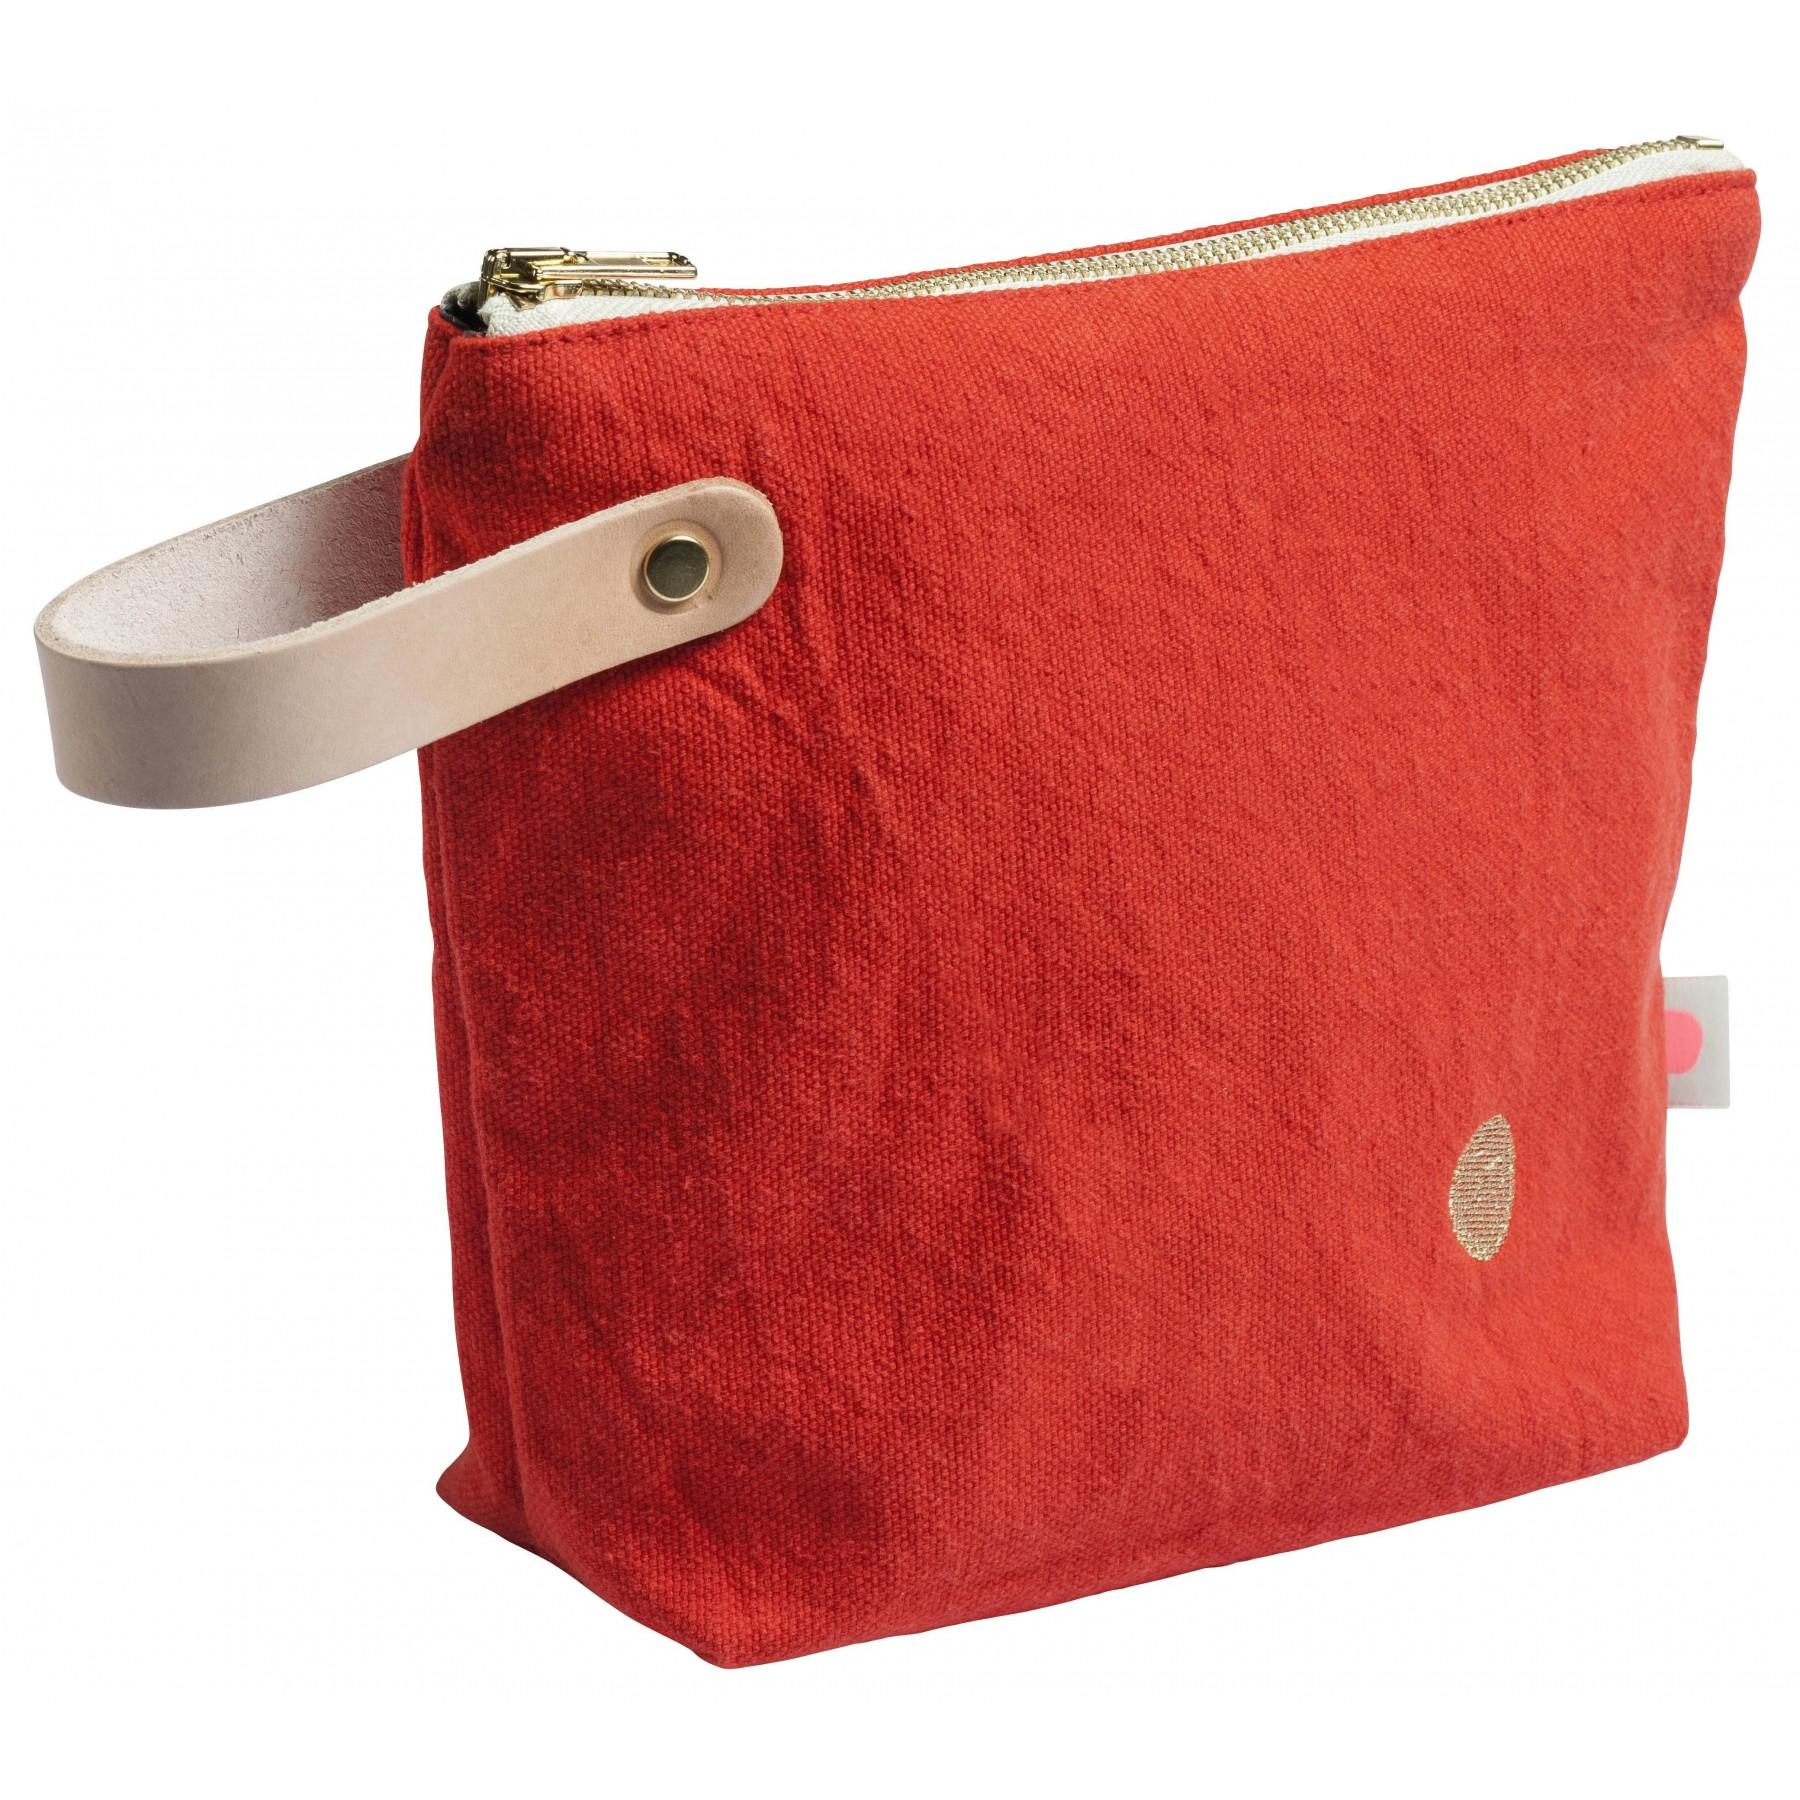 TOILETRY BAG IONA PAPRIKA PM